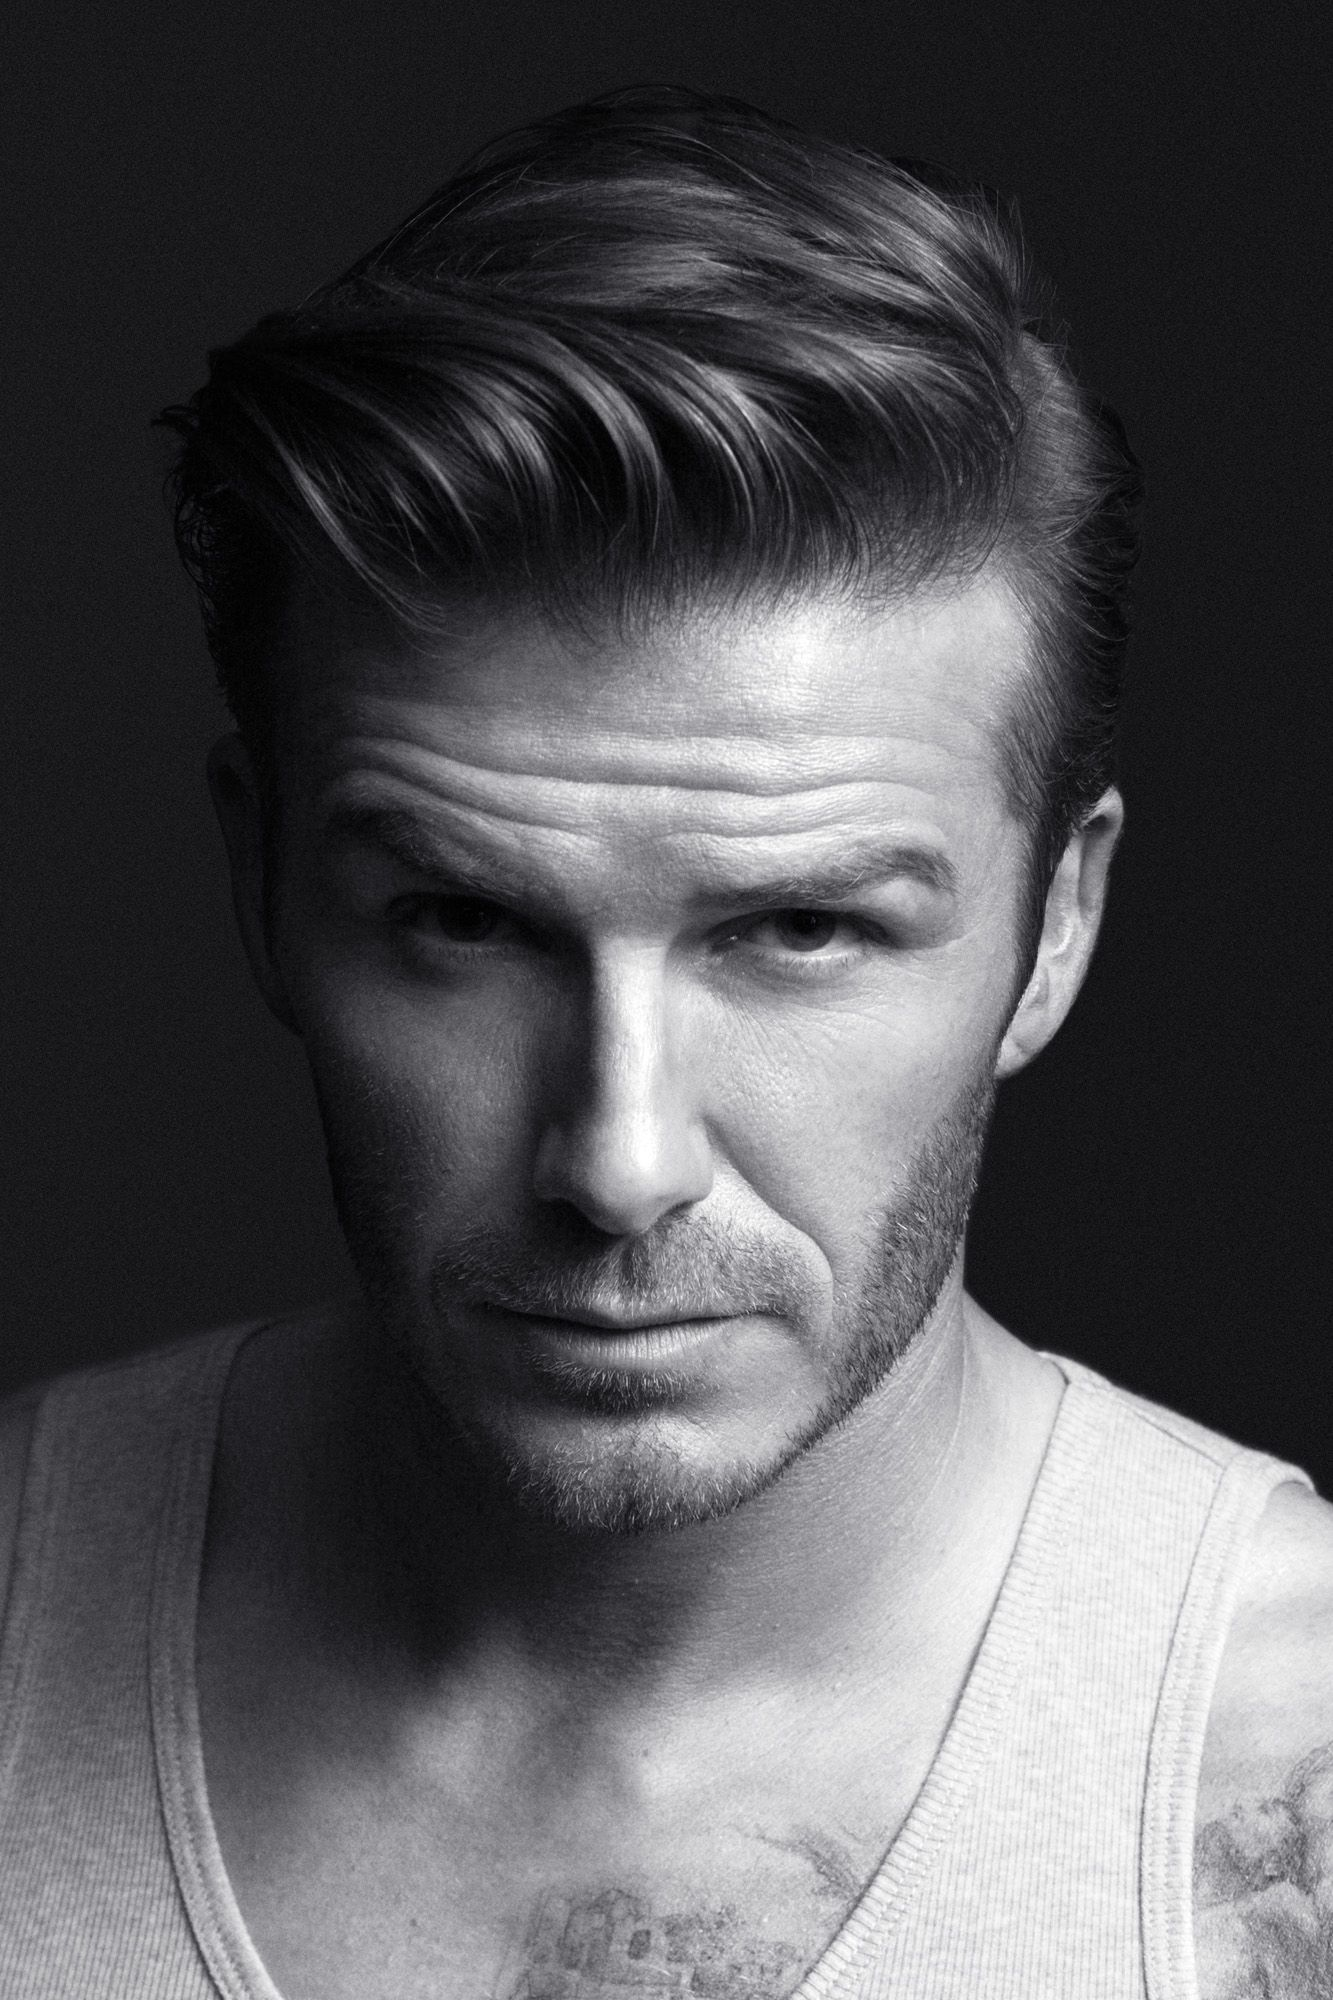 Mens short undercut haircut perfect  davidbeckham hottie   itus getting hot in here